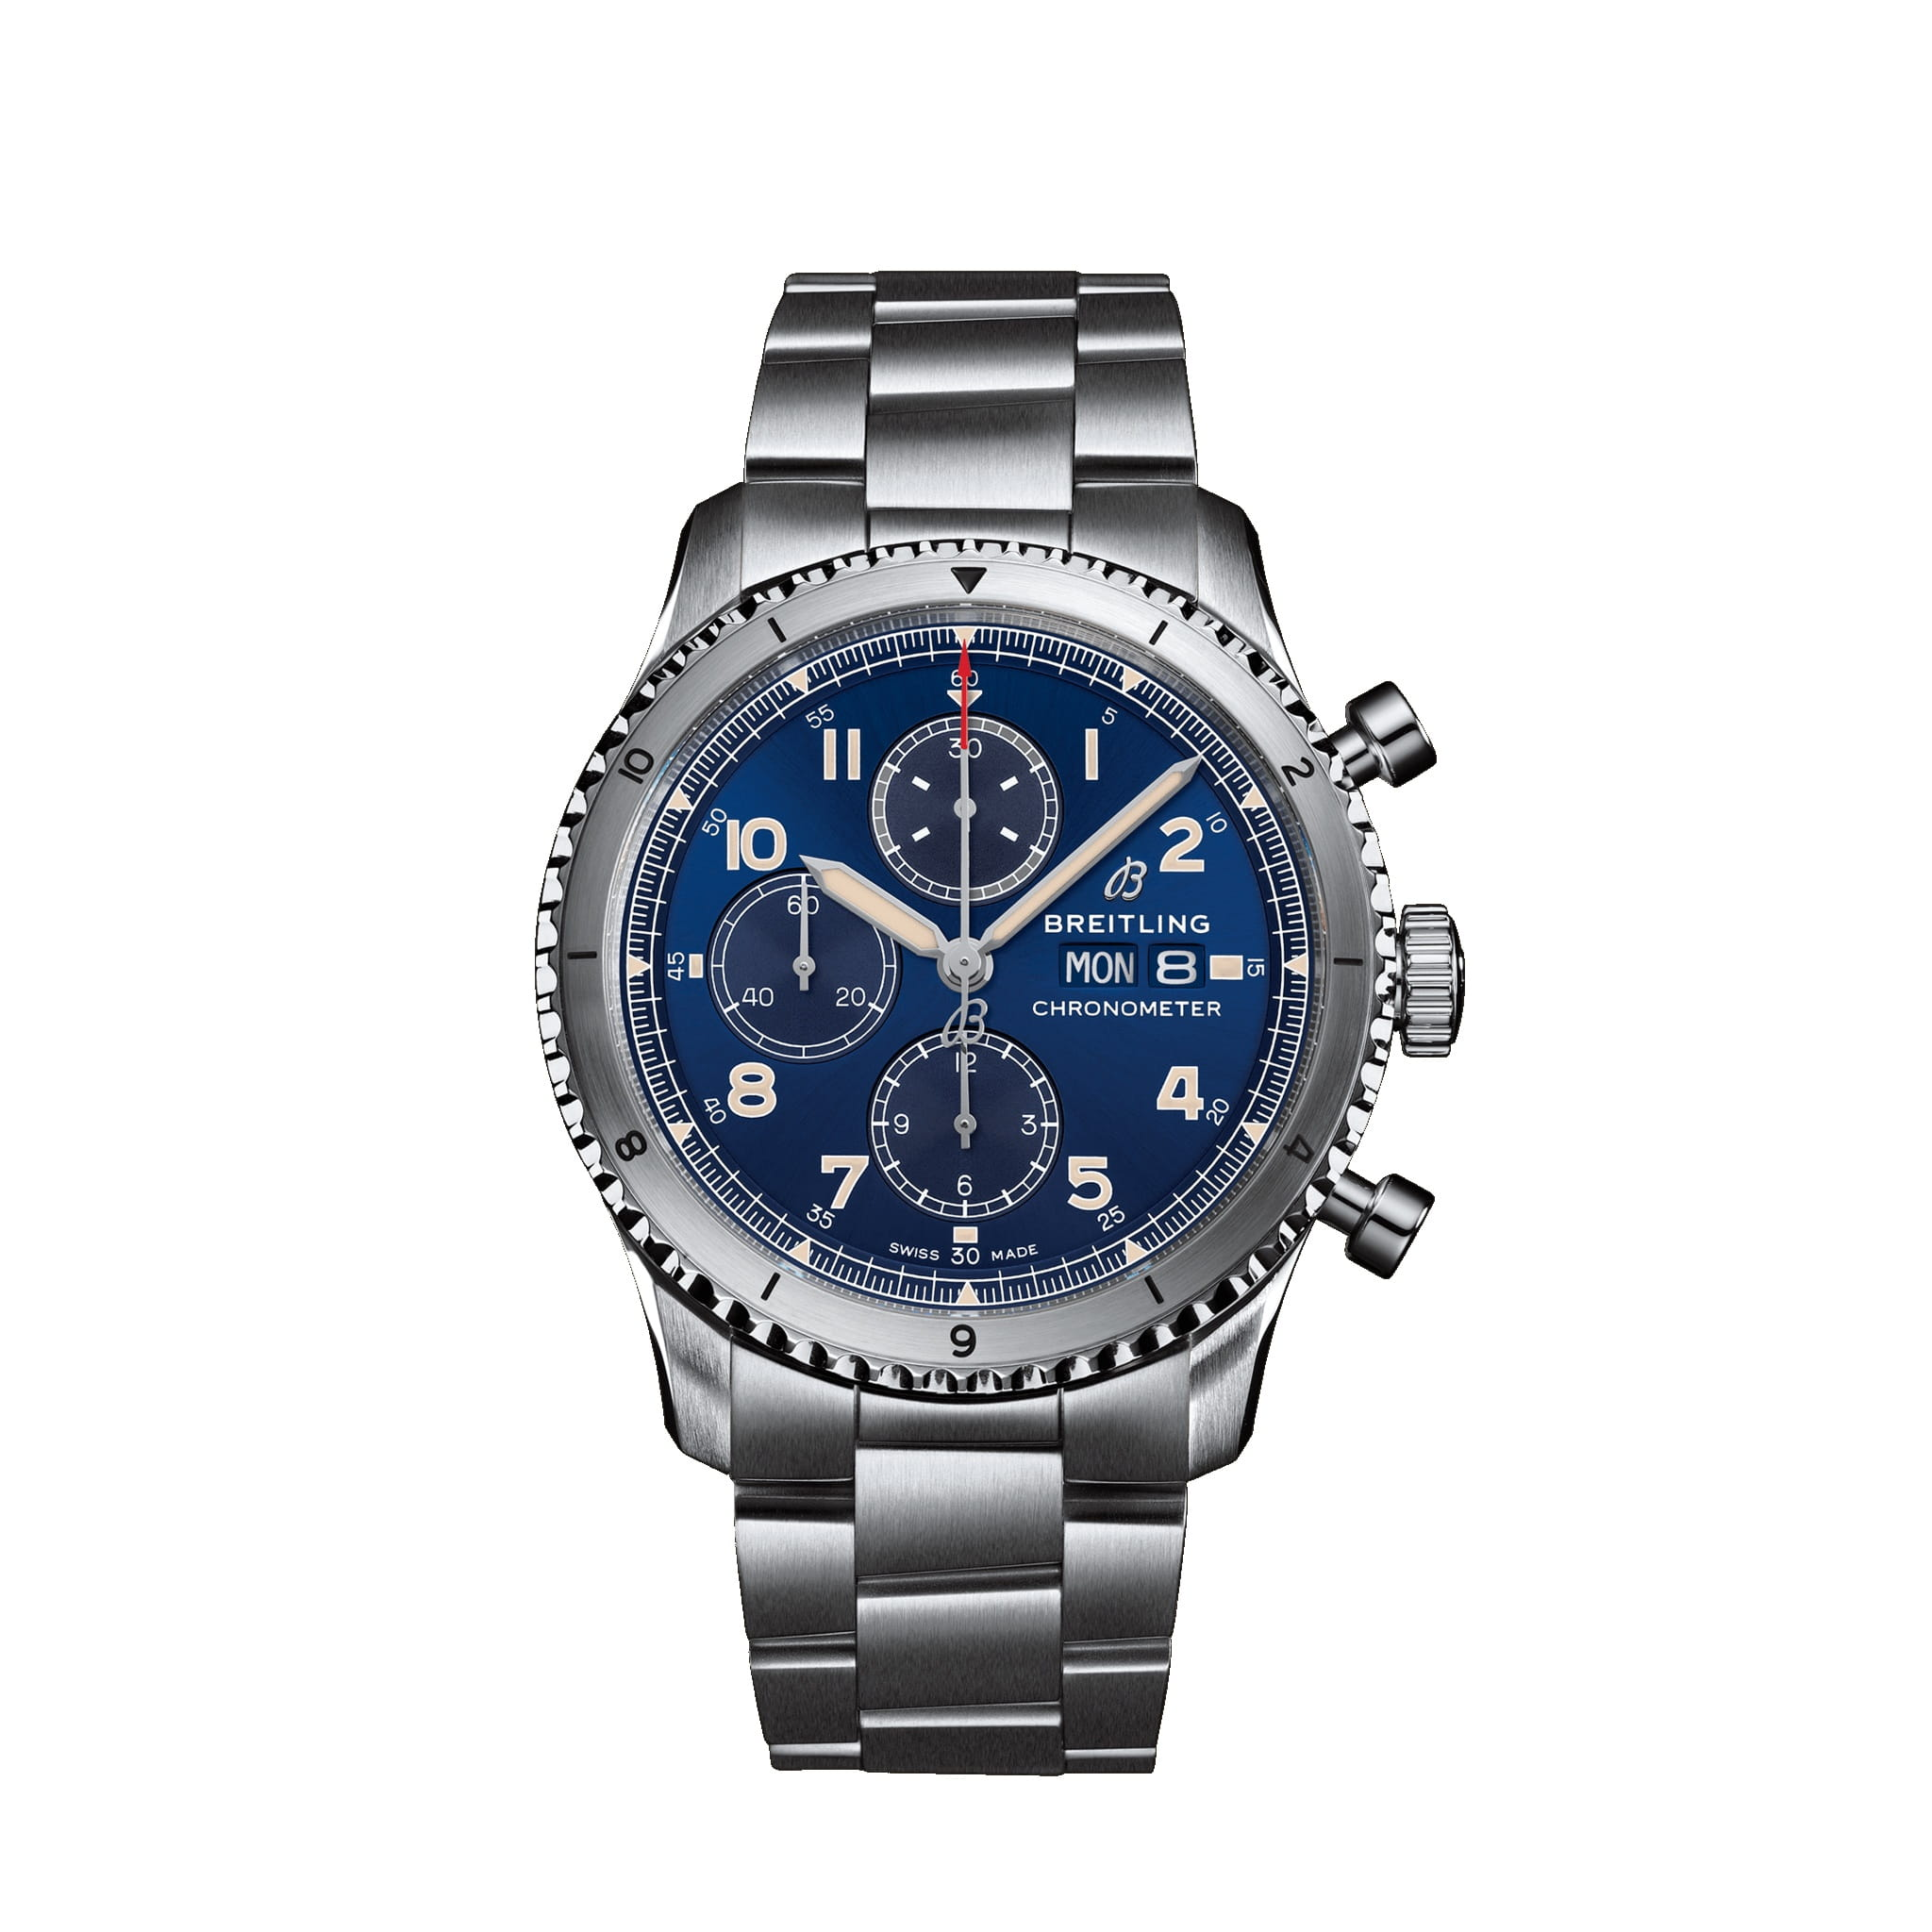 a13316101c1a1-aviator-8-chronograph-43-soldier.jpg